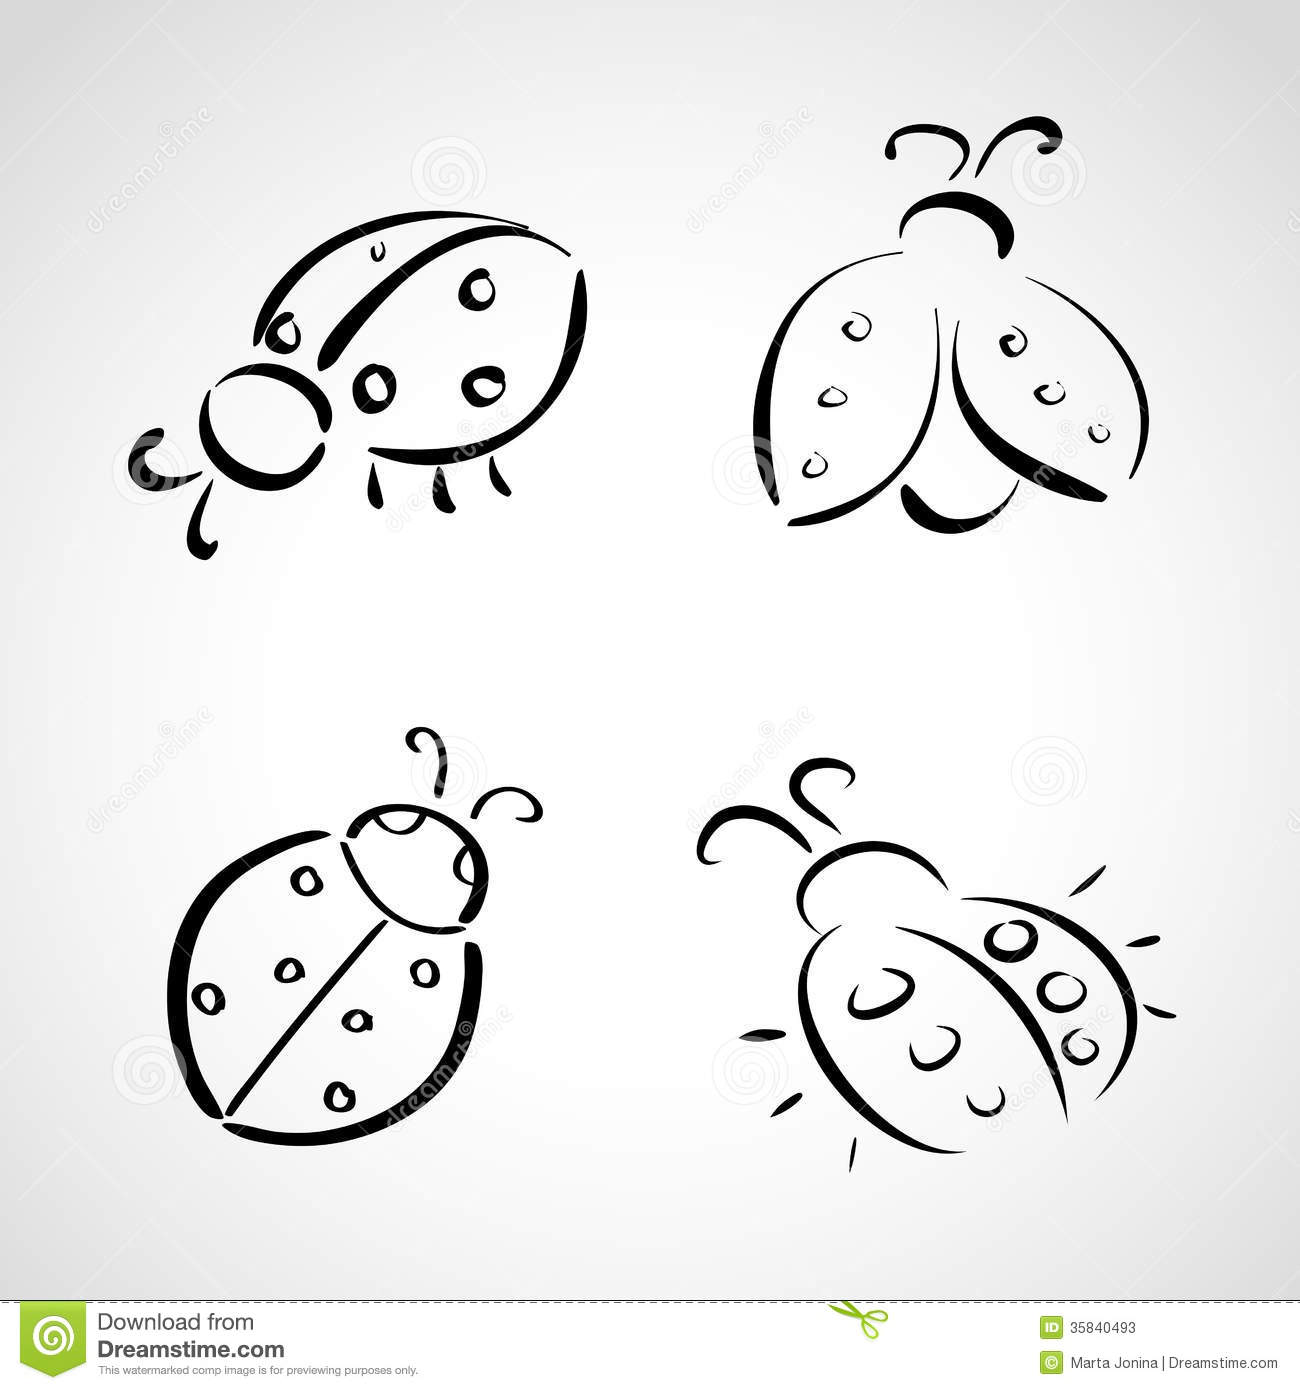 Sketch Icons - Ladybug Stock Photos - Image: 35840493